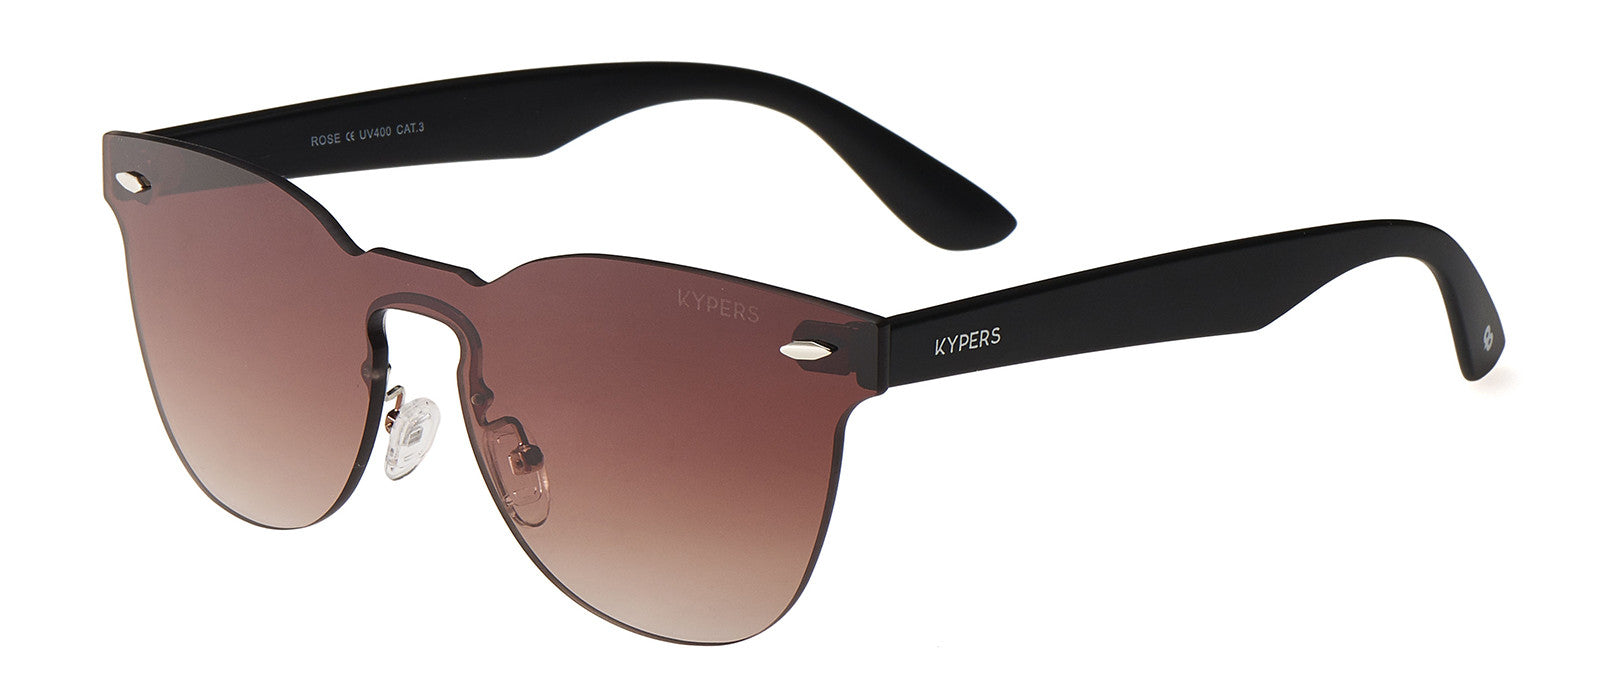 KYPERS sunglasses model ROSE RS002 with black frame and gradient brown & sky blue mirror lens